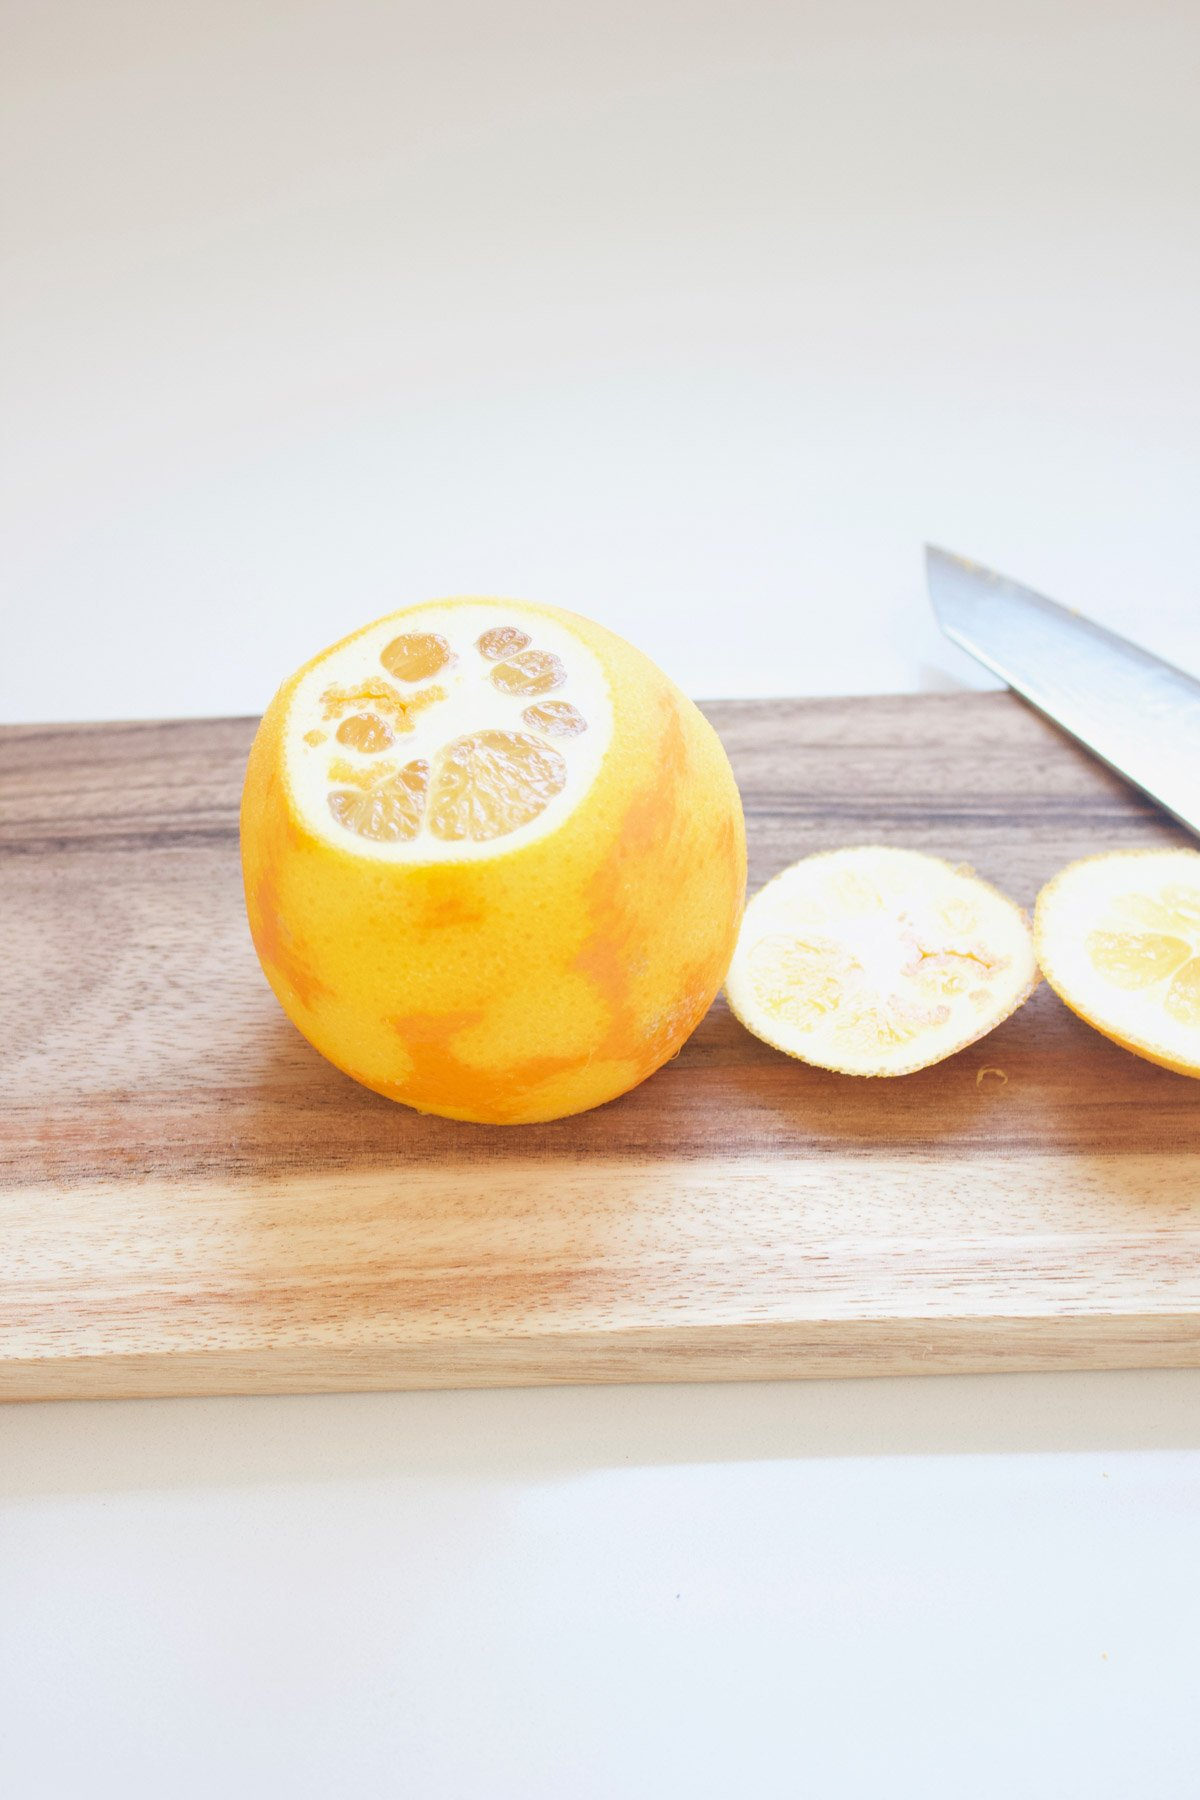 Orange with the end cut off on a cutting board.